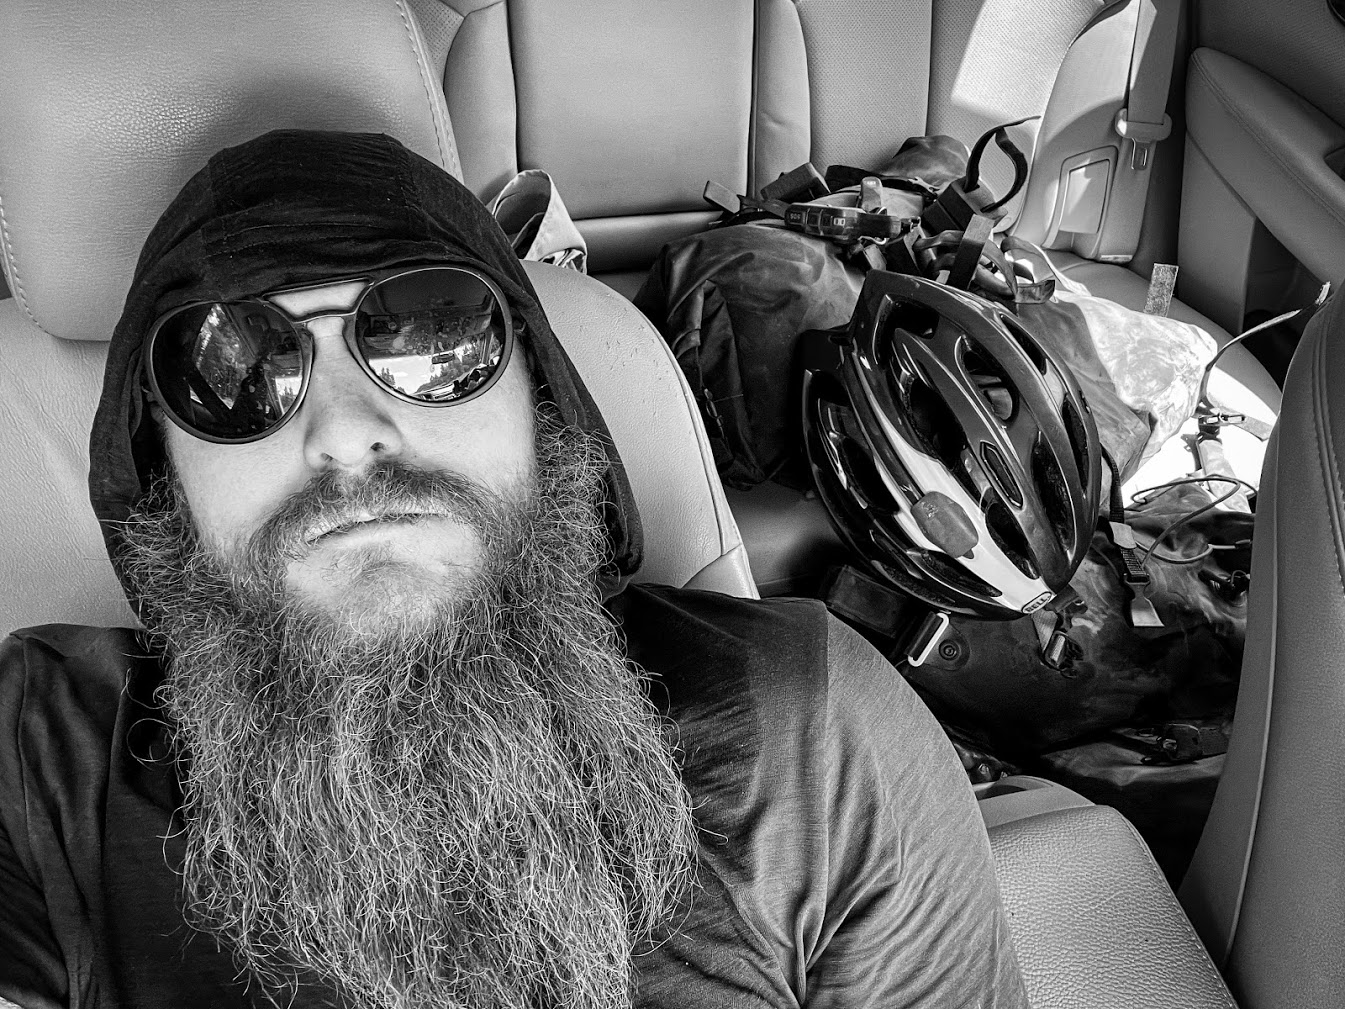 A man with a luxuriously long beard reclines in the front seat of a car with bikepacking gear visible in the back seat.